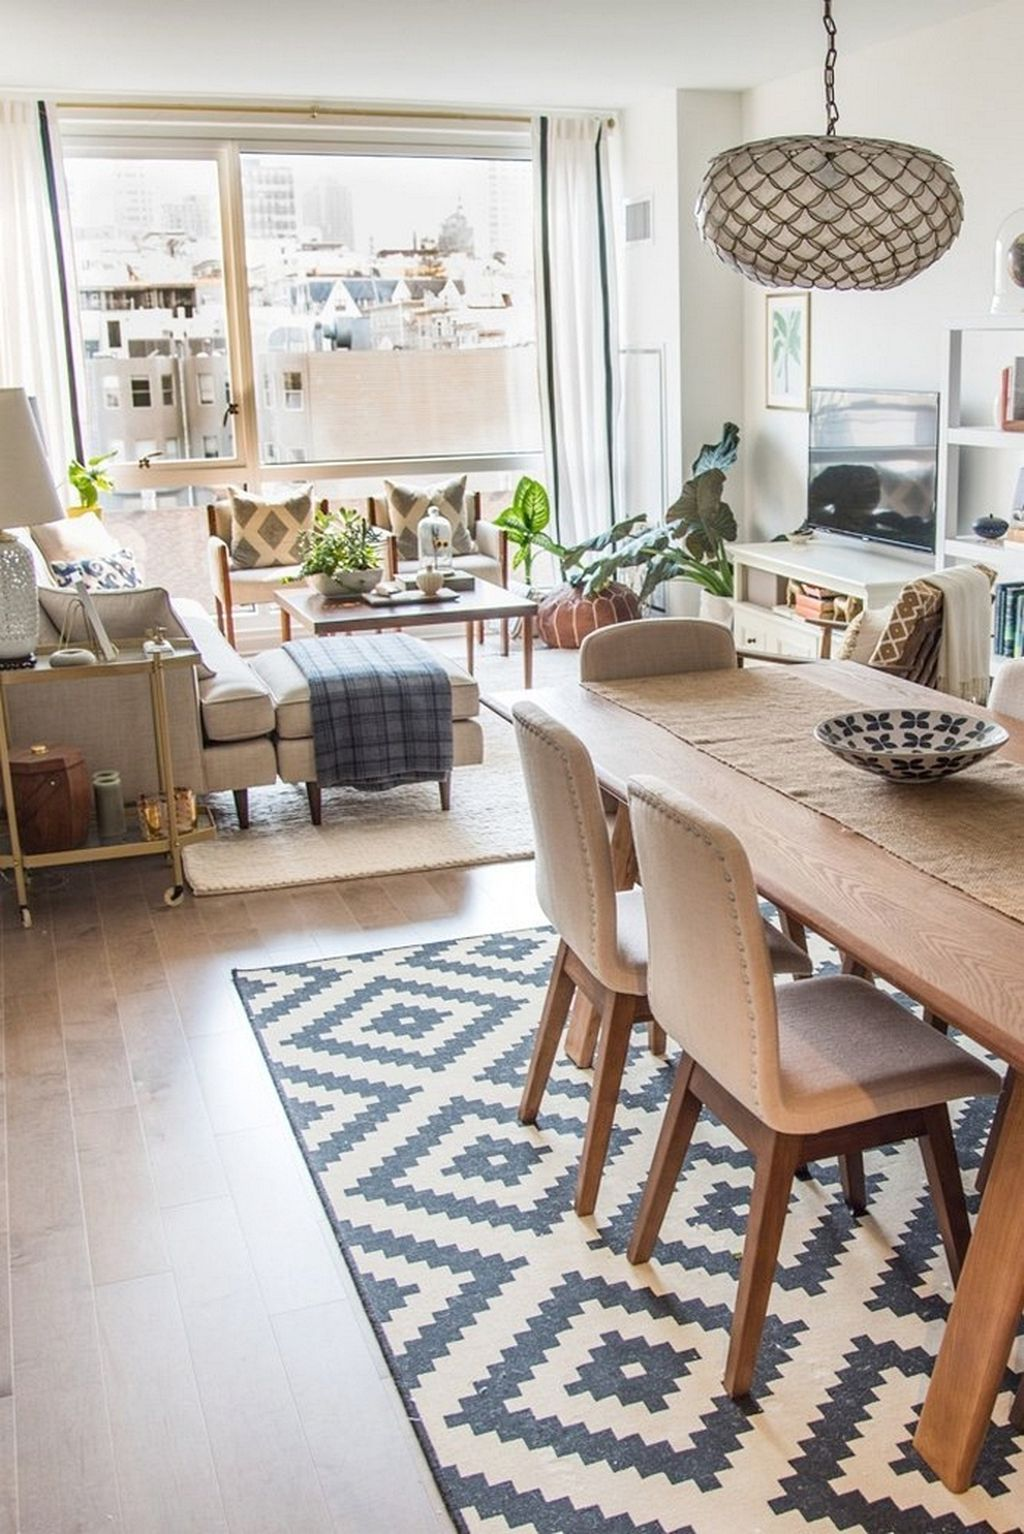 Inspiring And Affordable Decoration Ideas For Small Apartment 30